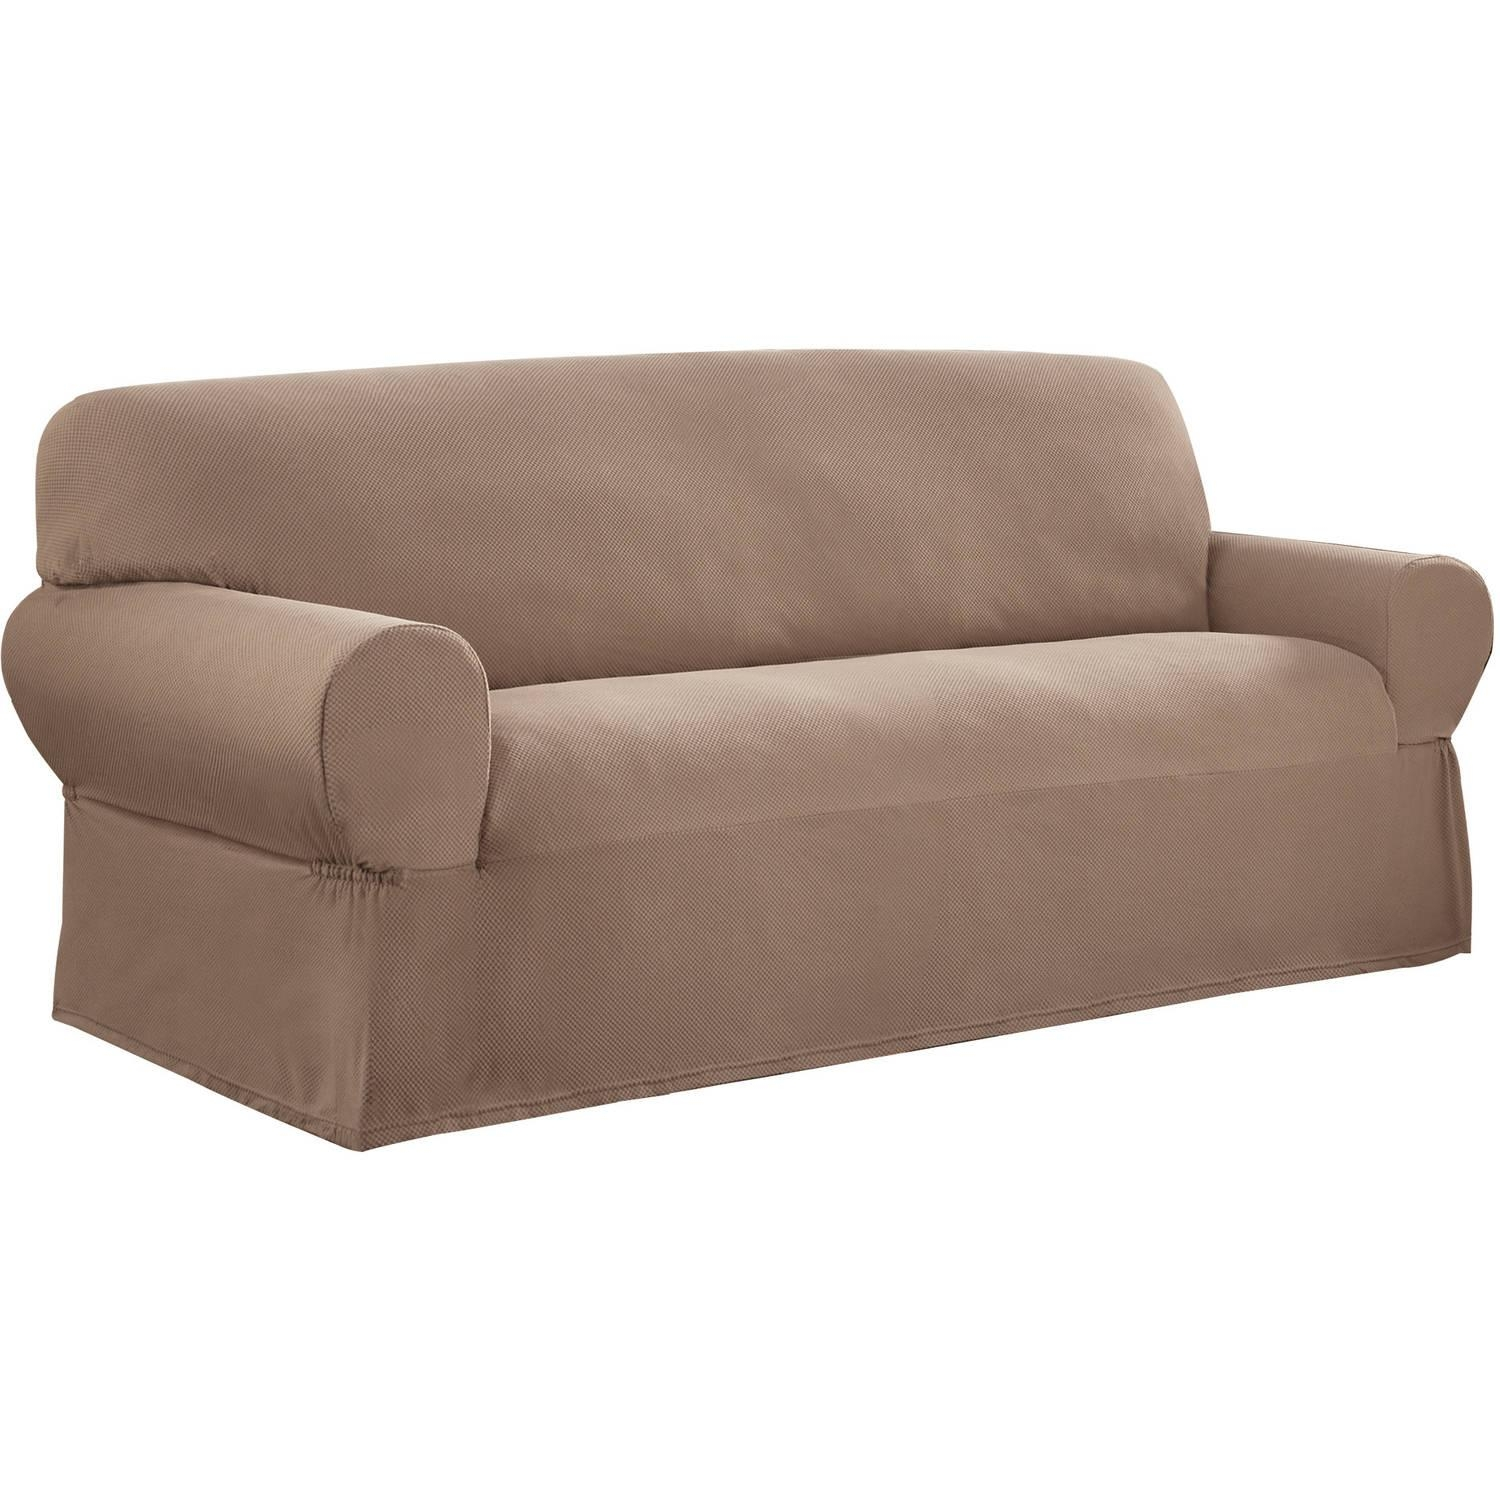 20 best ideas suede slipcovers for sofas sofa ideas for Suede furniture